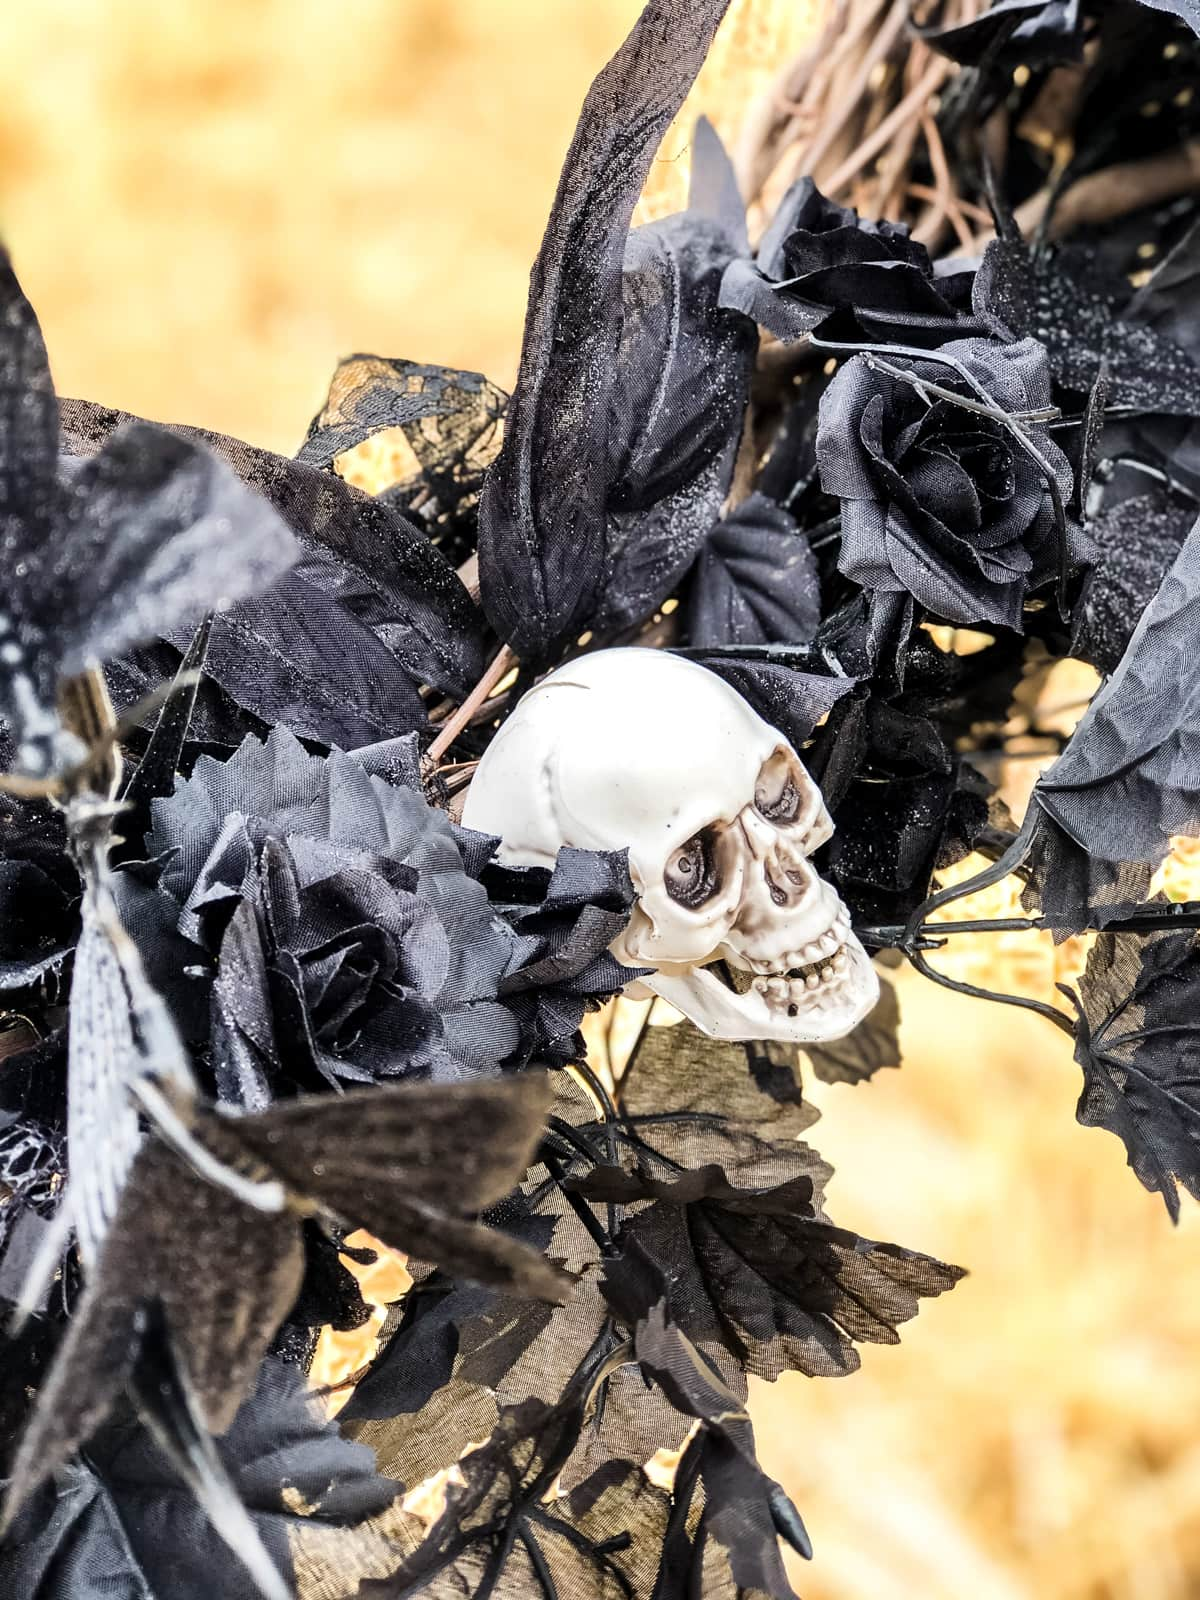 A close up of black floral stems and a decorative skull